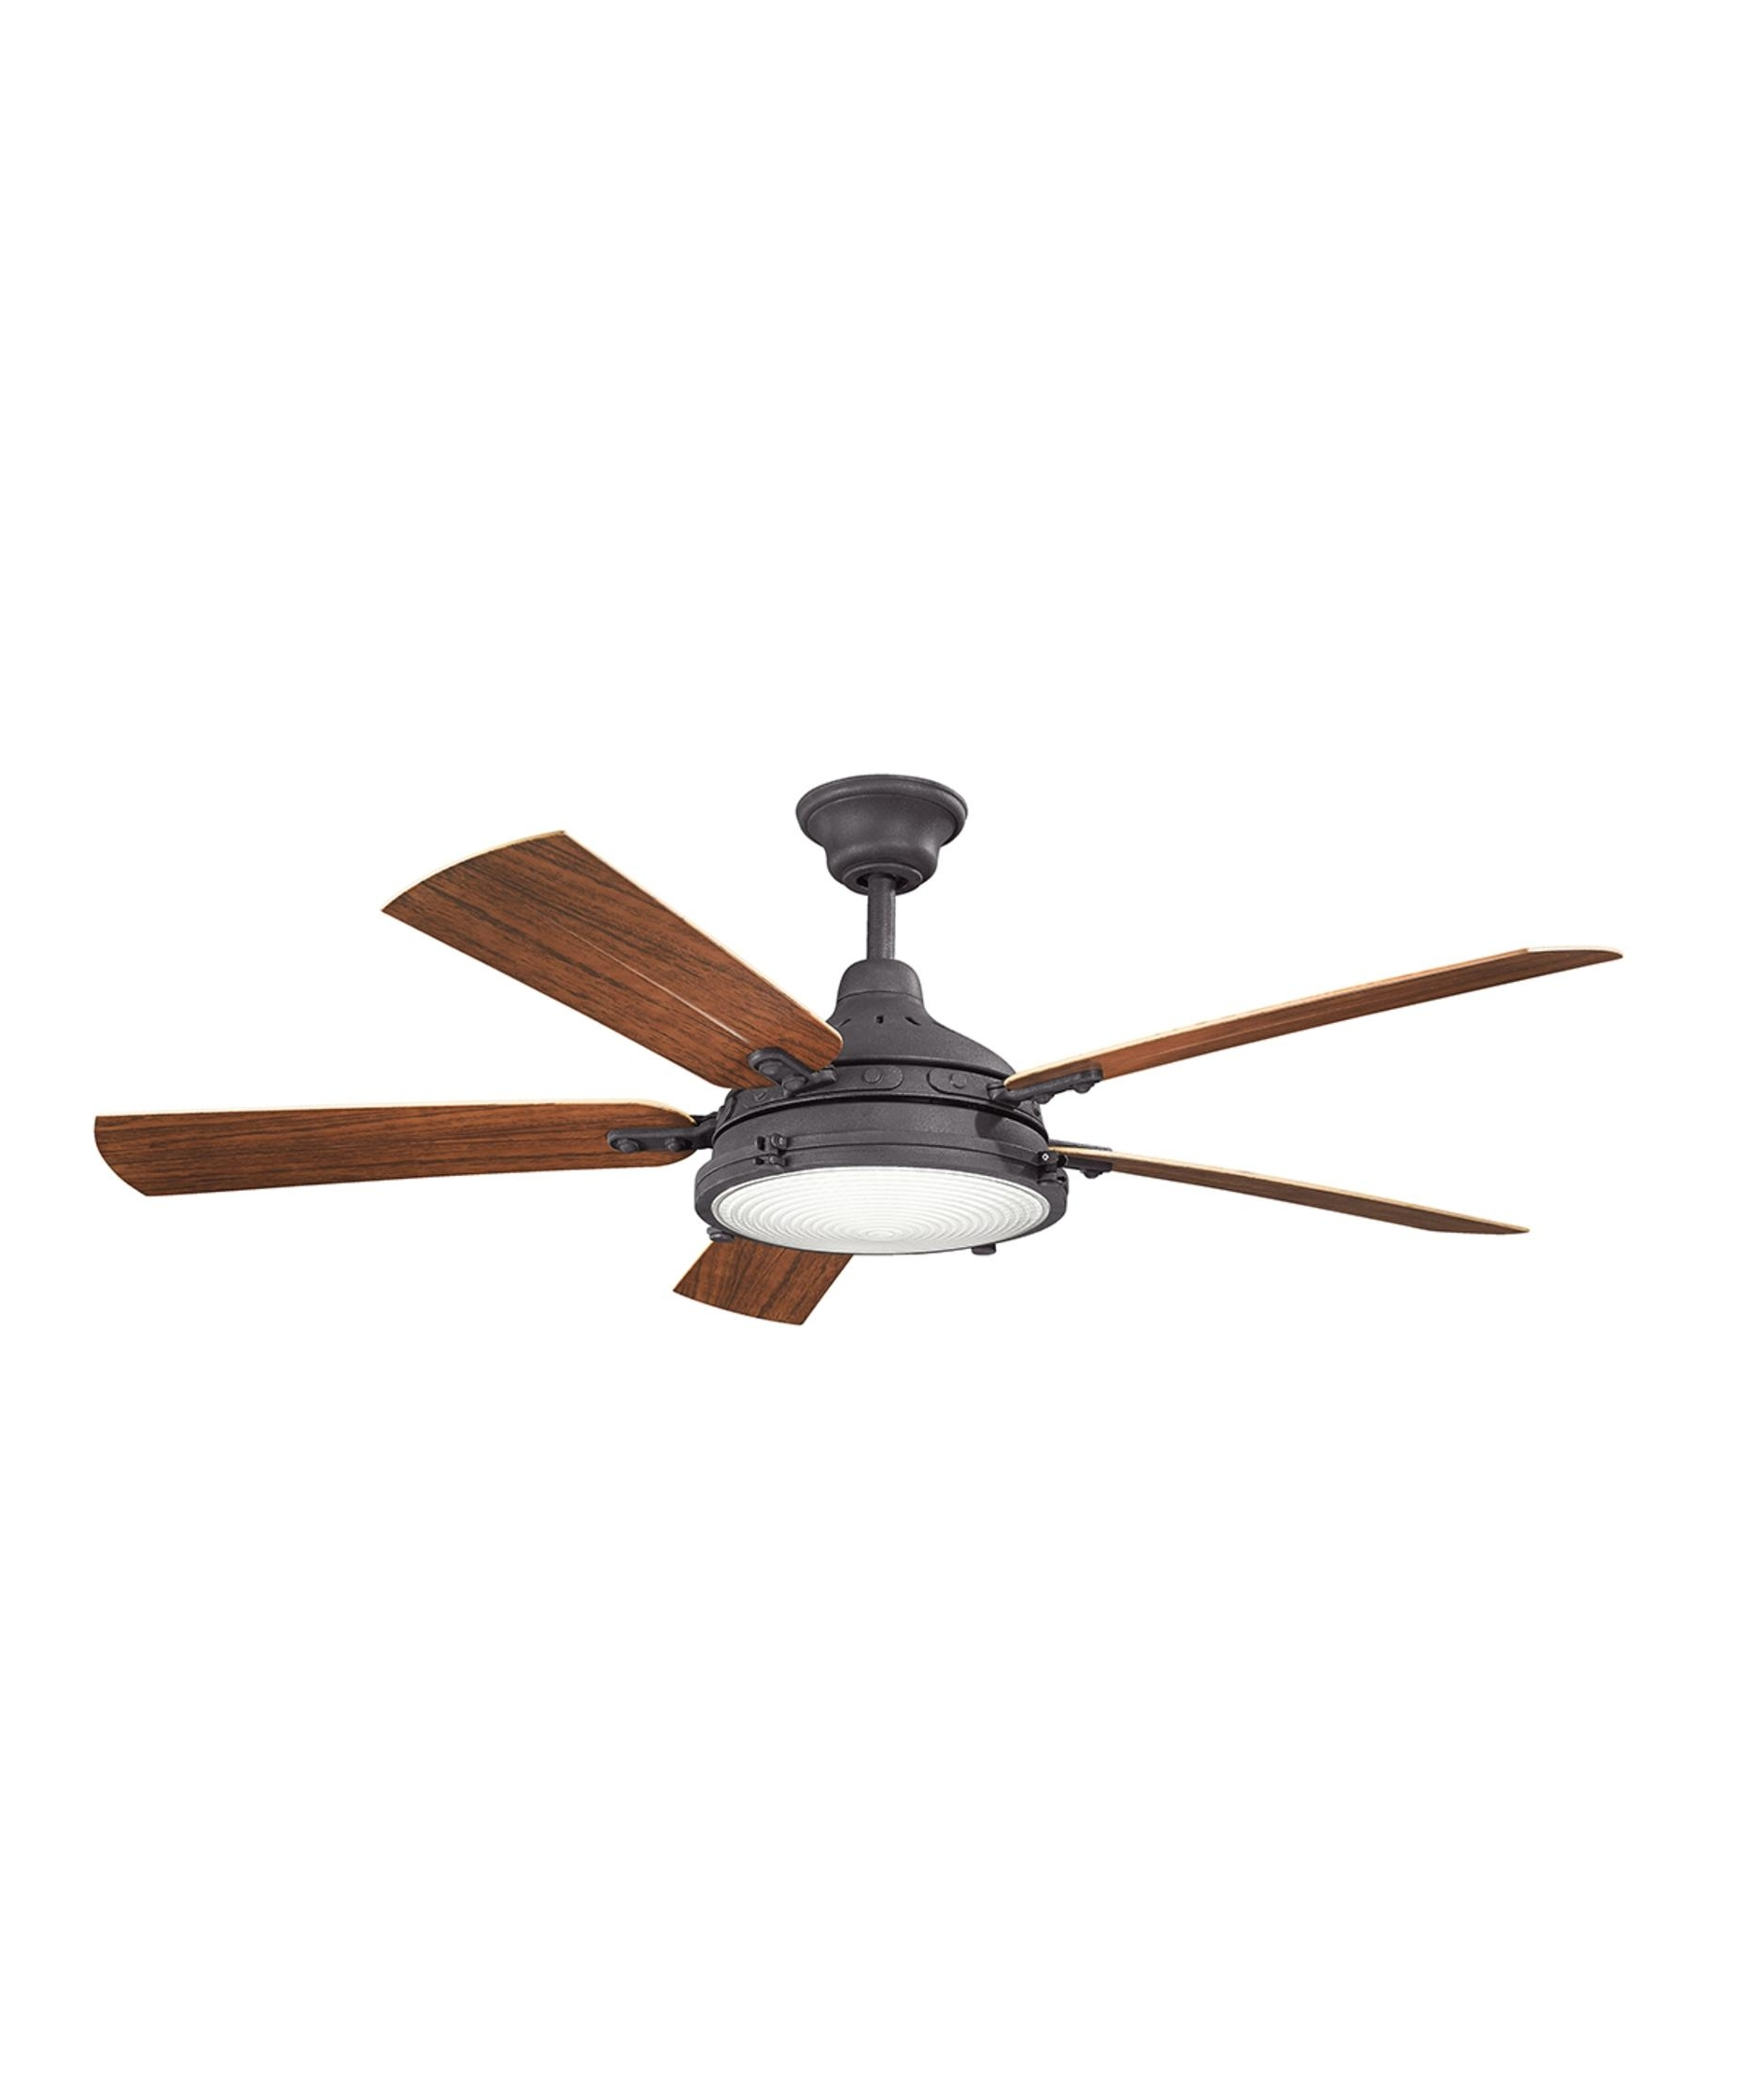 Kichler 310117 Hatteras Bay 60 Inch 5 Blade Ceiling Fan (View 14 of 20)